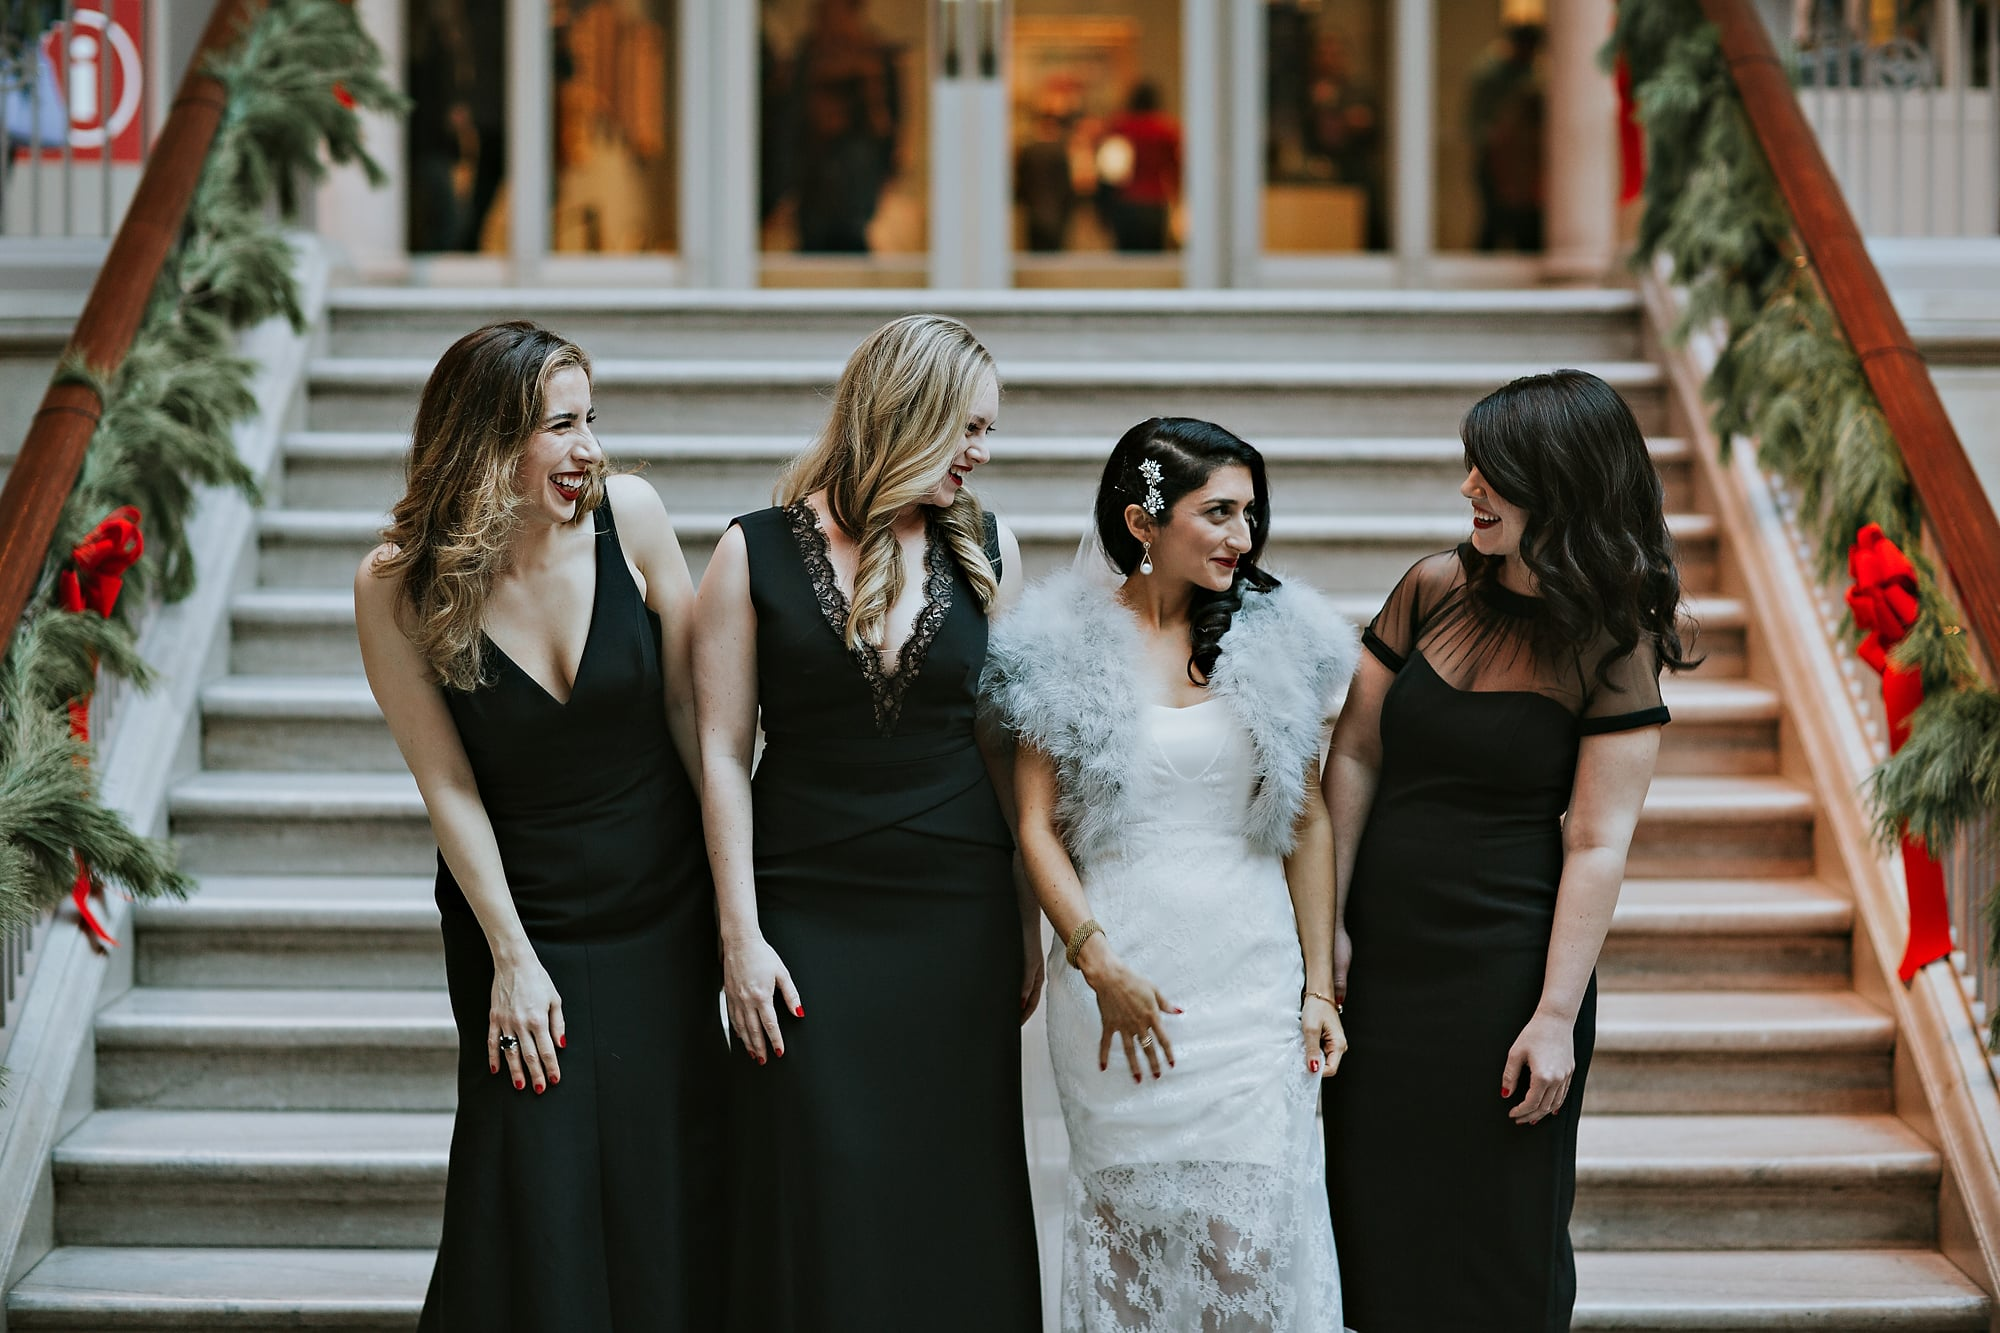 rachel gulotta photography Chicago Wedding-36.jpg